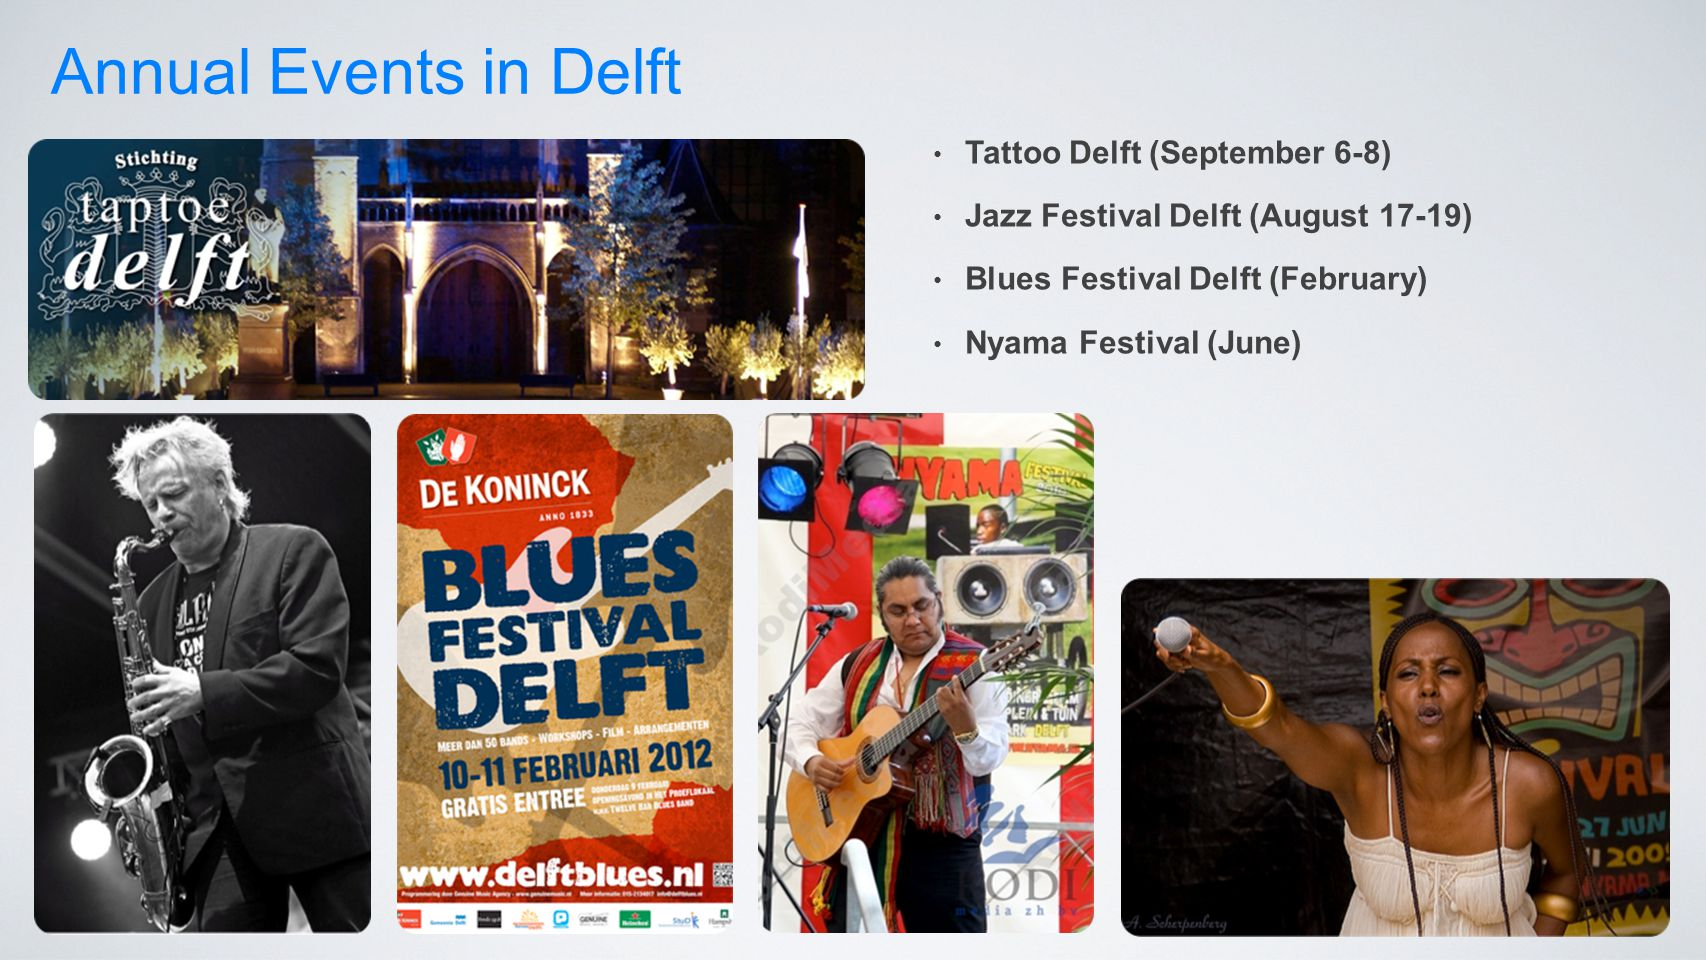 Annual Events in Delft Tattoo Delft (September 6-8) Jazz Festival Delft (August 17-19) Blues Festival Delft (February) Nyama Festival (June)